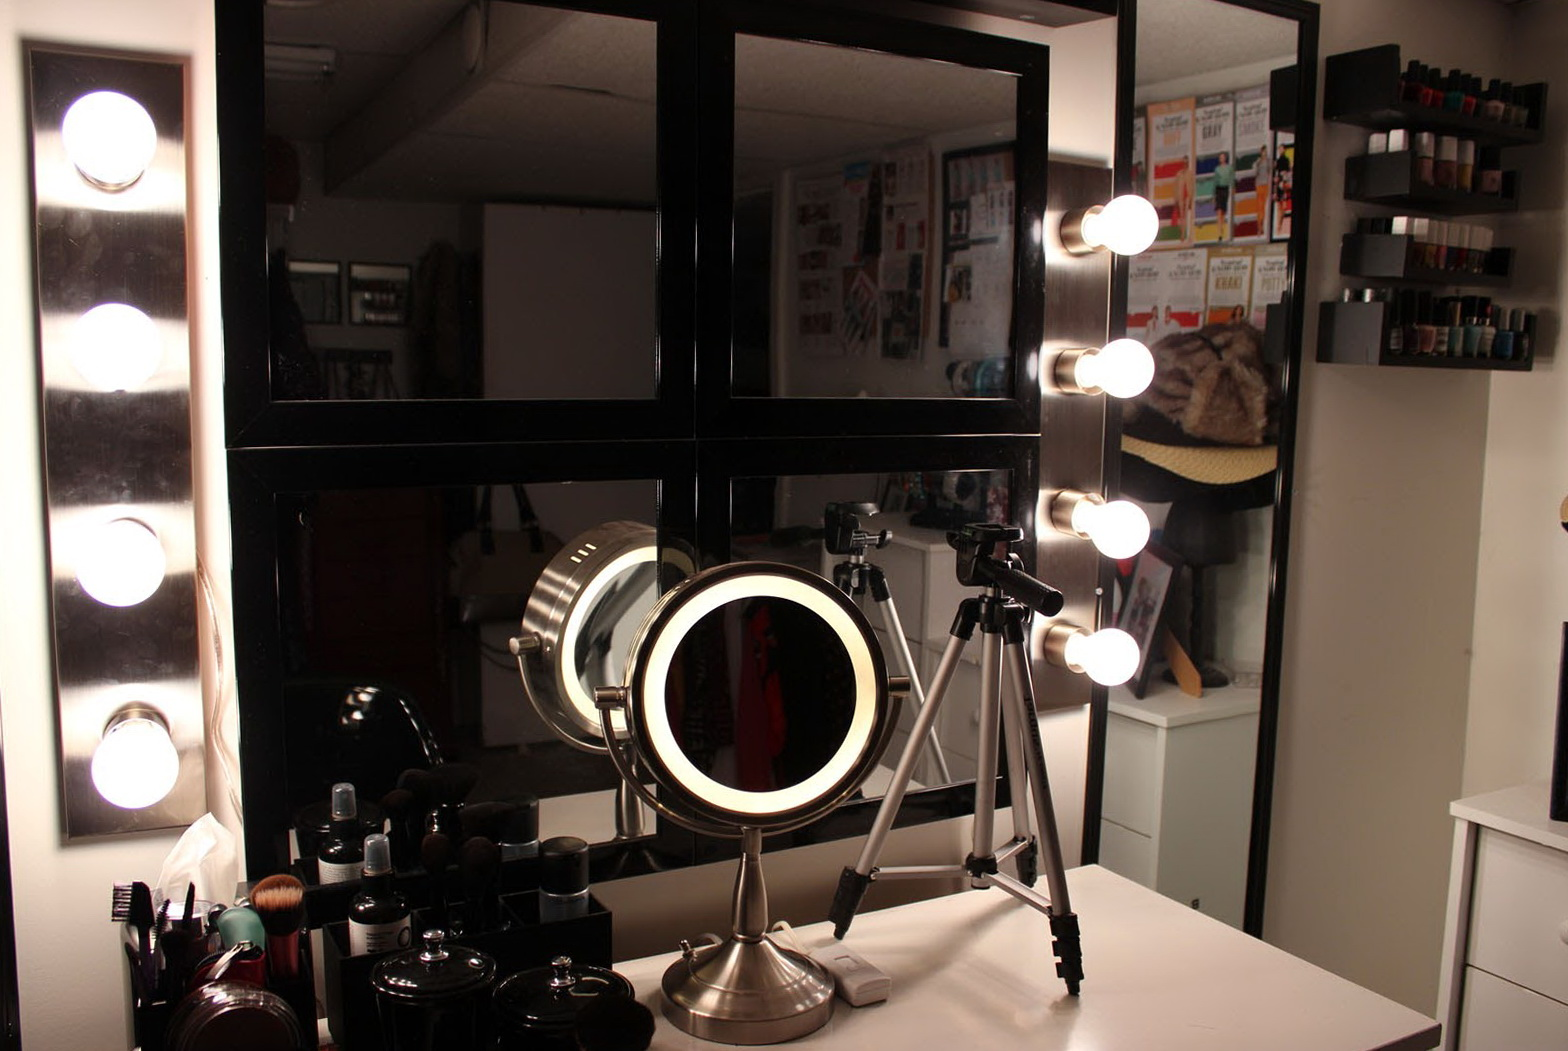 Makeup Vanity Lights Plug In : Makeup Vanity Lights Plug In Home Design Ideas